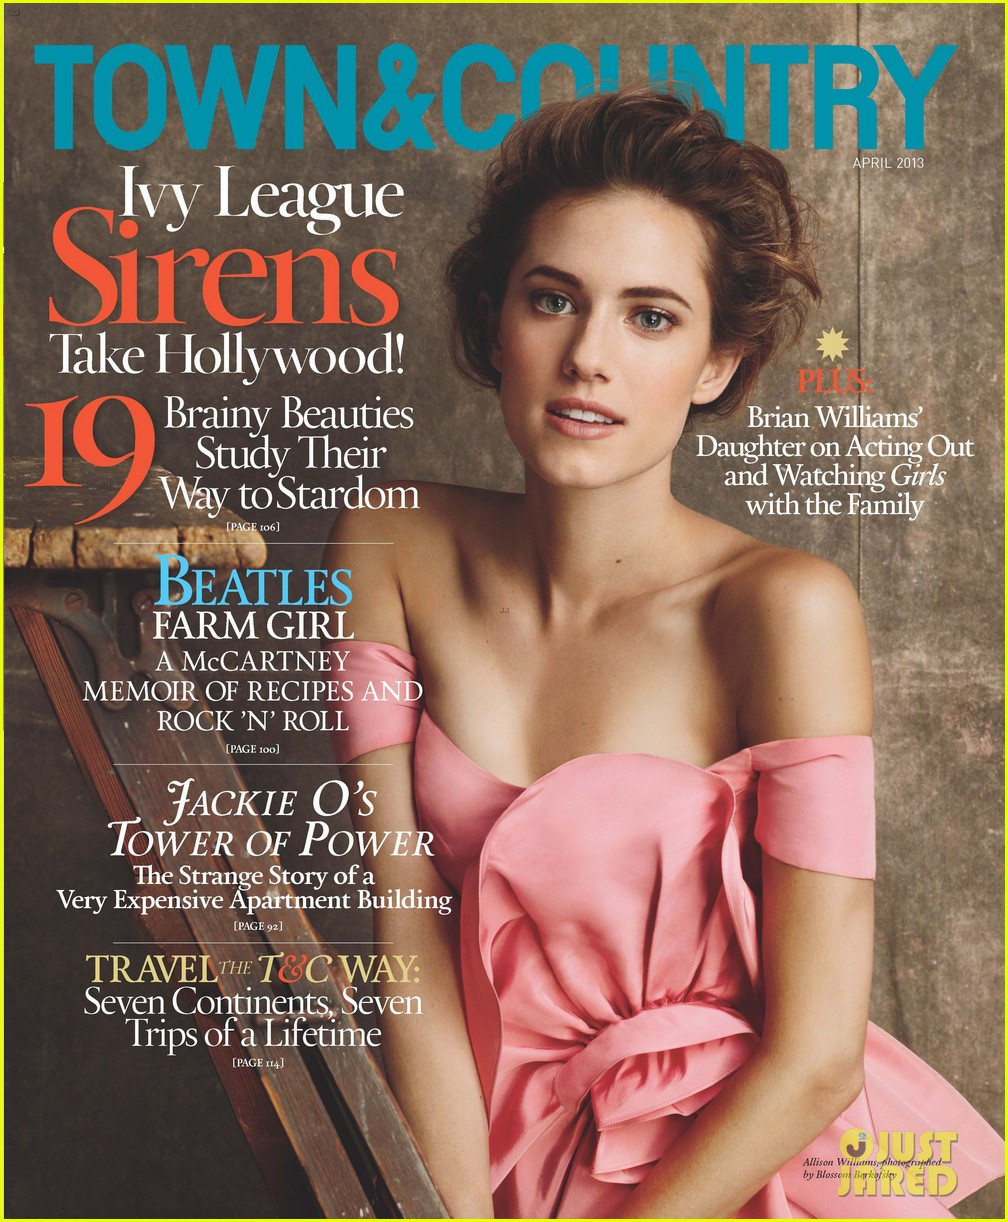 allison williams covers town and country april 2013 05